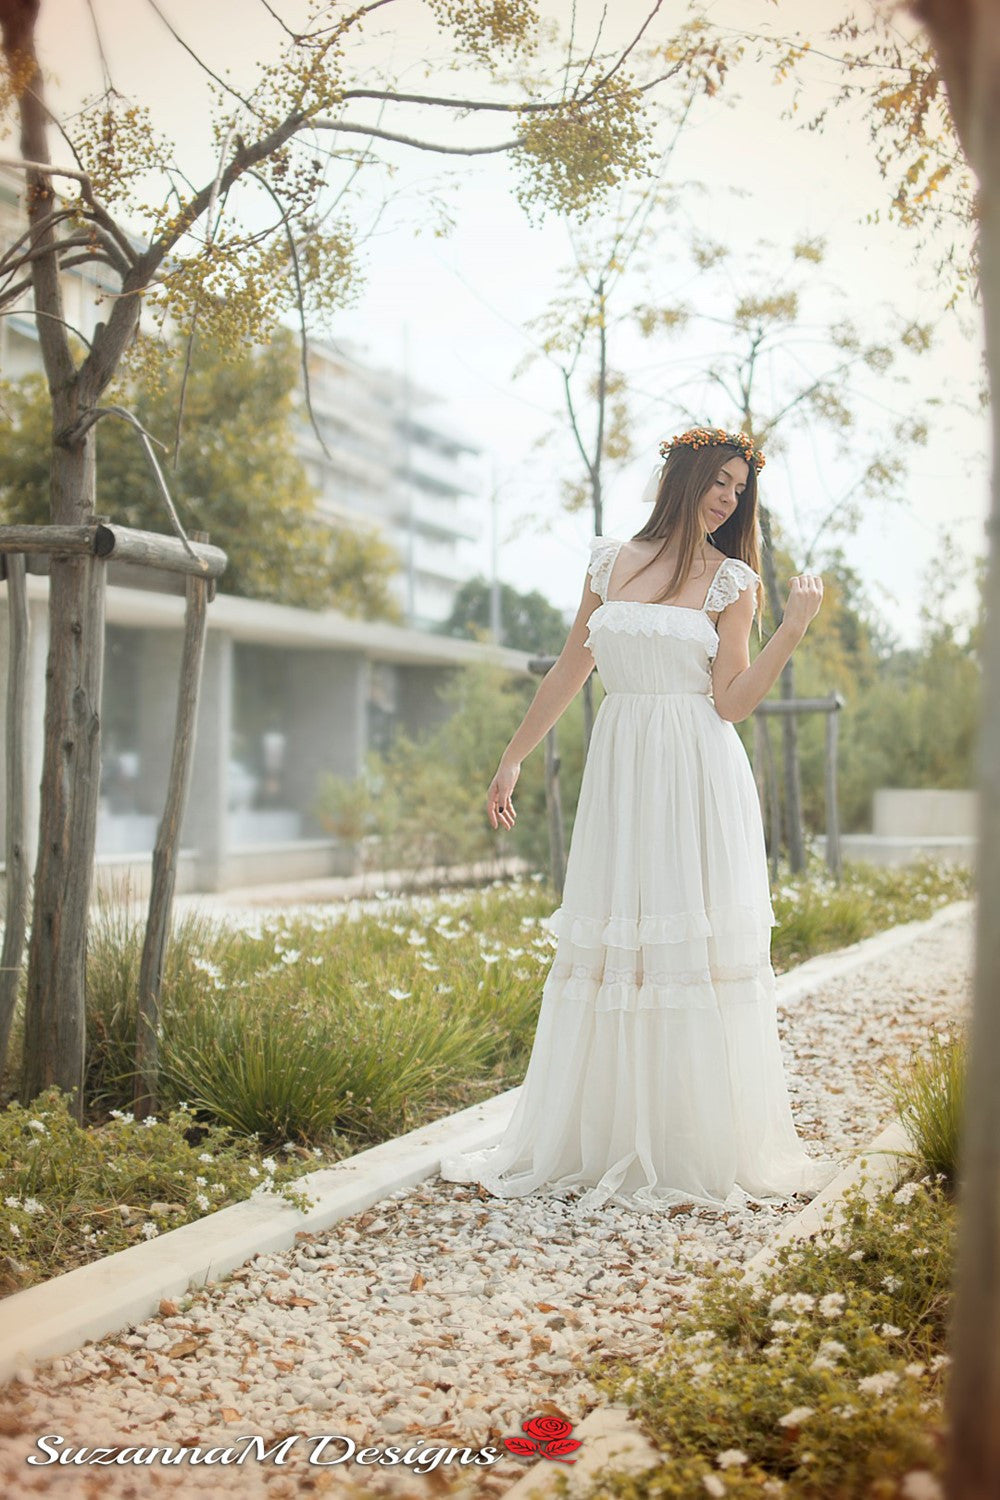 Agostina Handmade Gypsy Wedding Dress | Suzanna Bridal